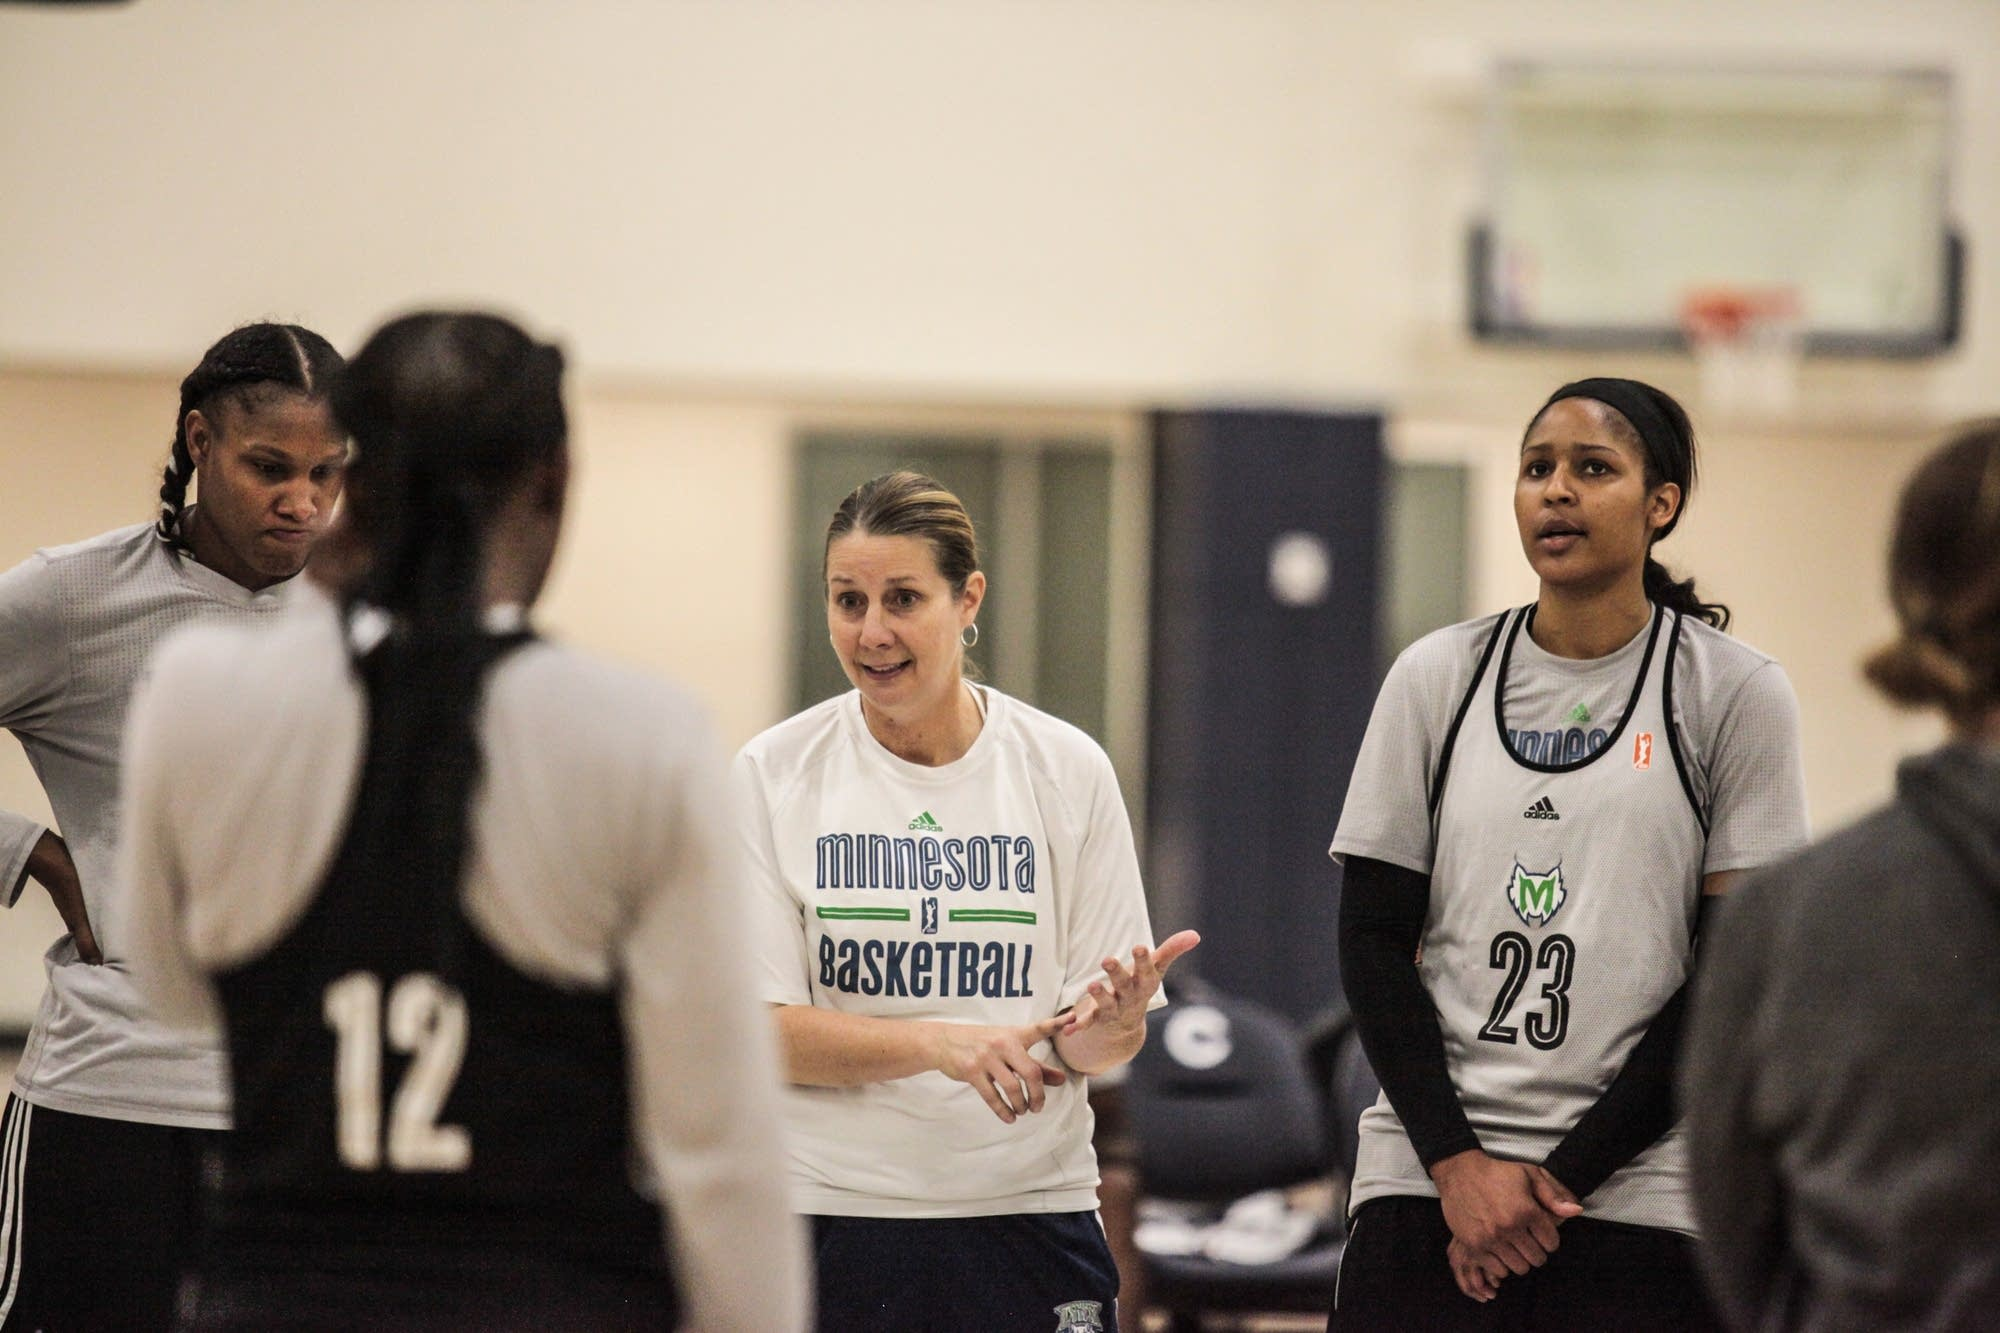 Minnesota Lynx head coach Cheryl Reeve talks to players.